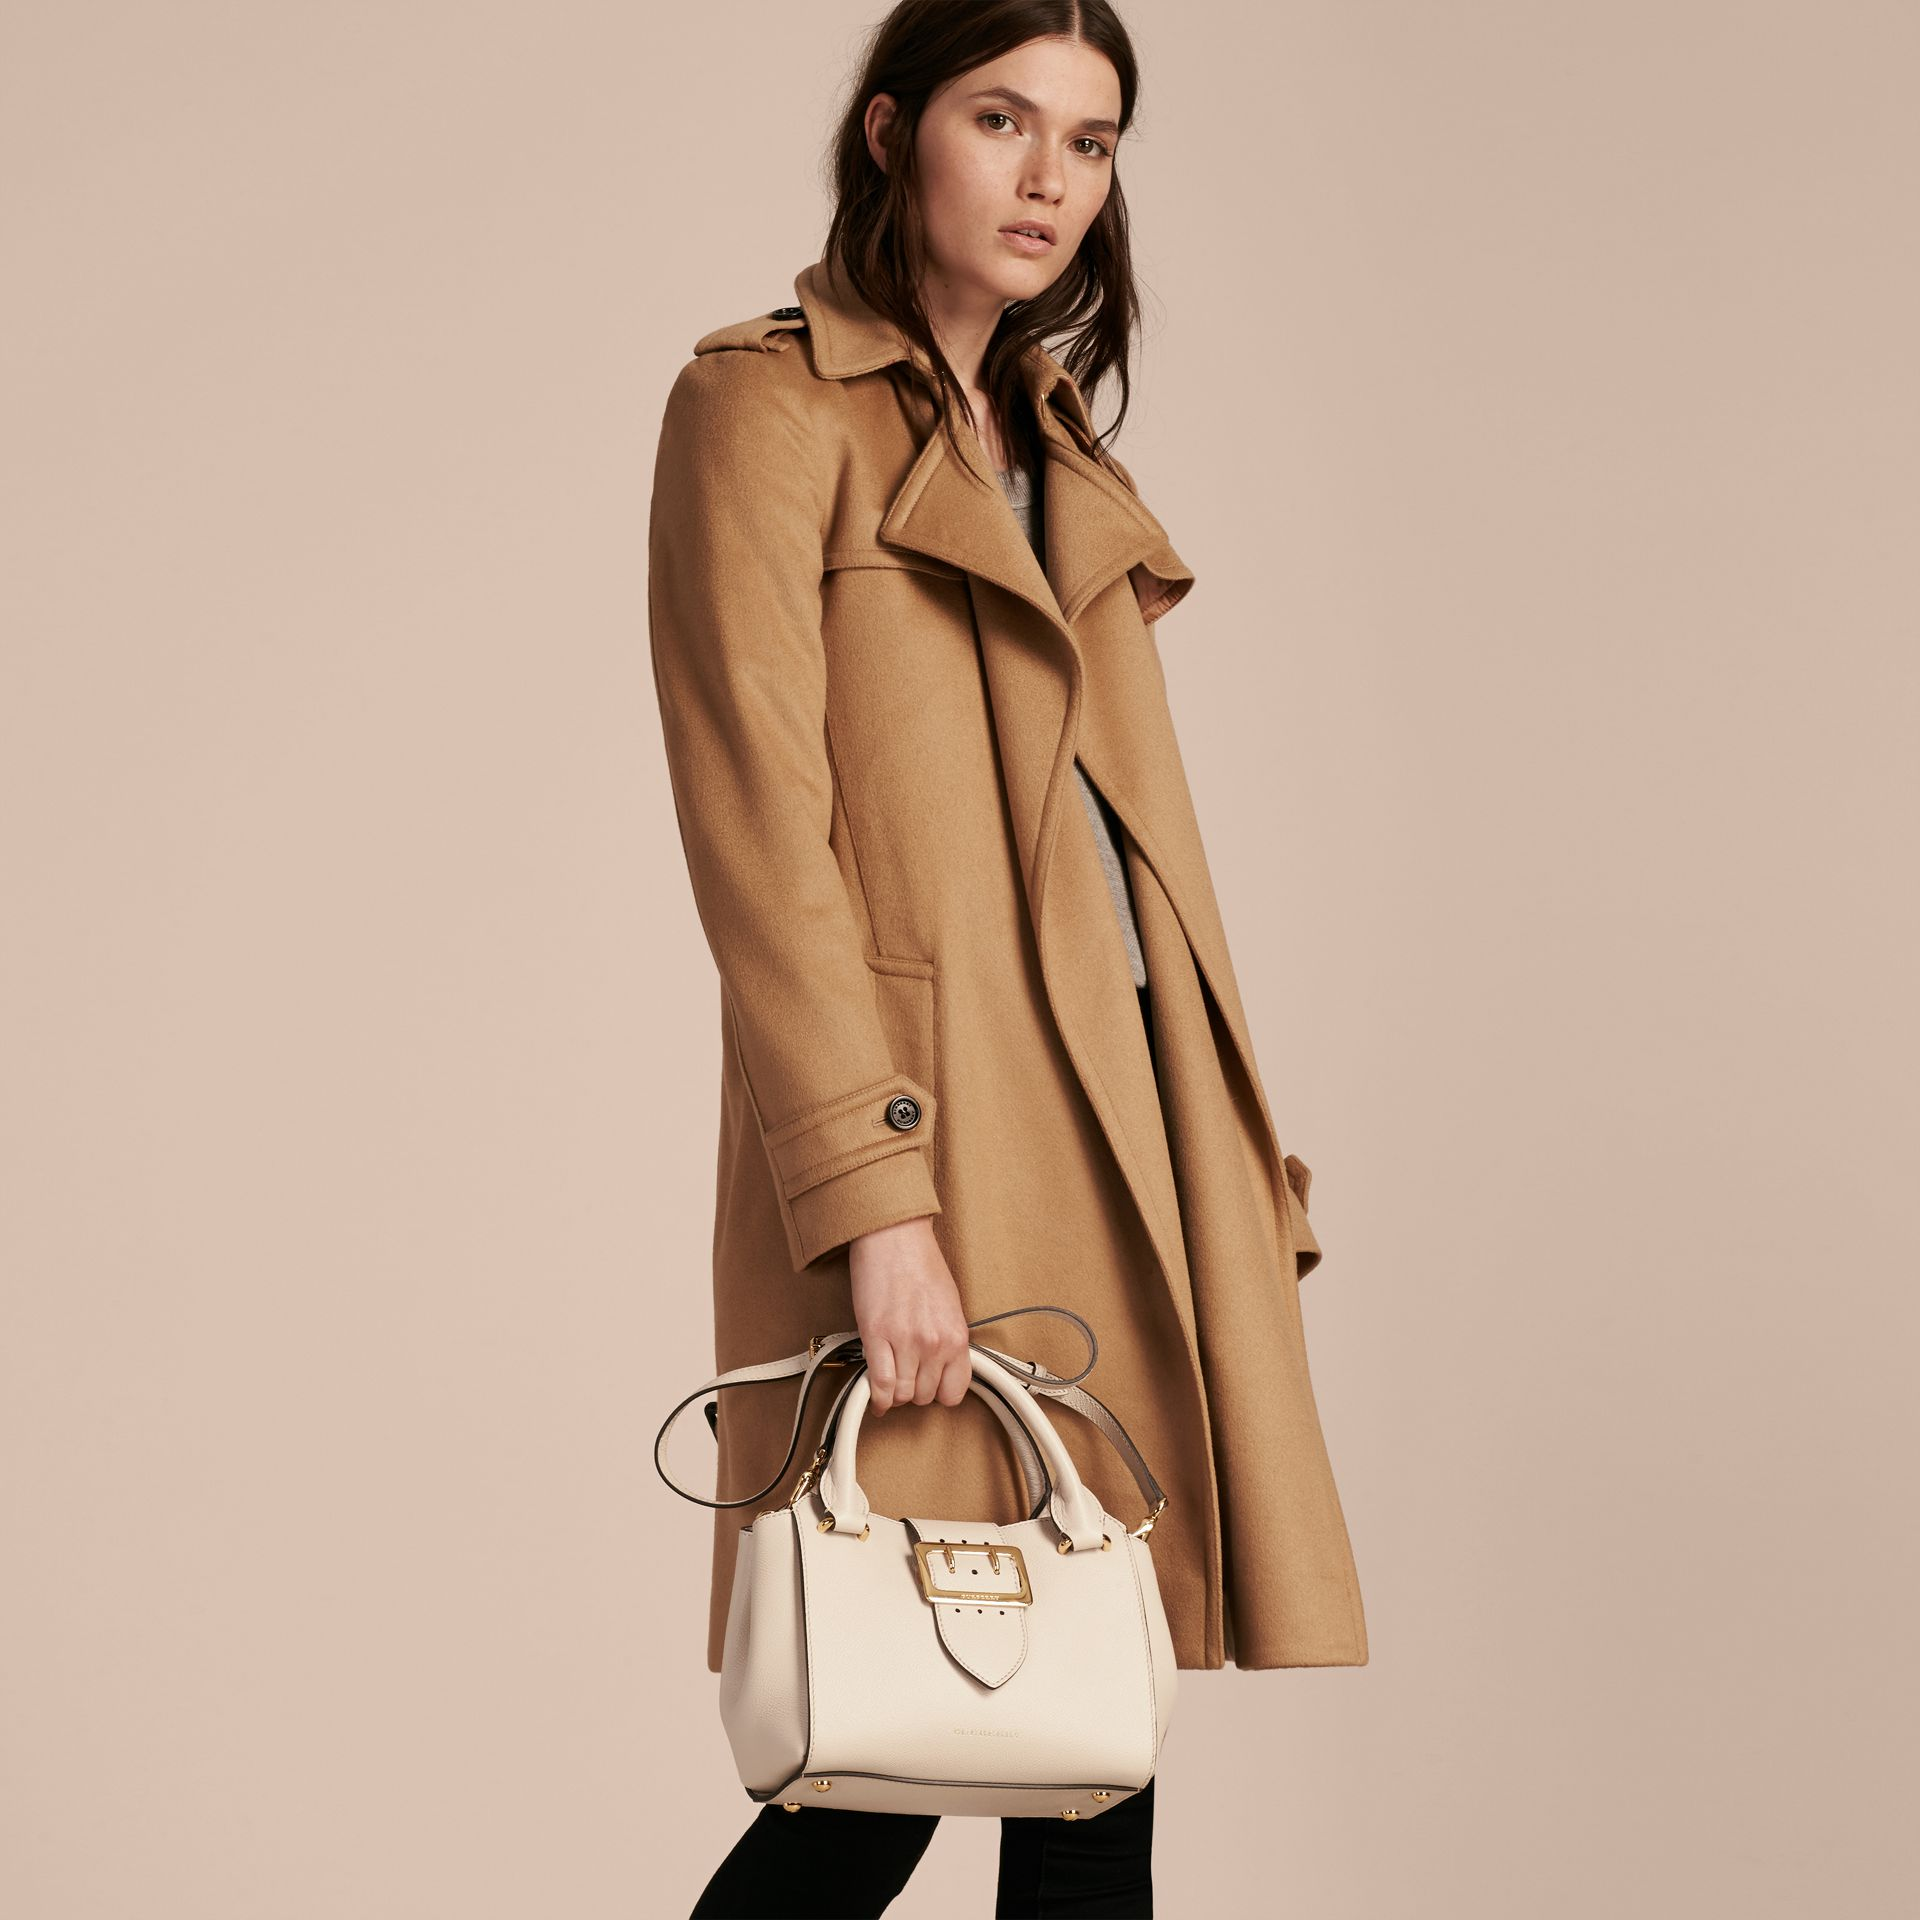 The Small Buckle Tote in Grainy Leather in Limestone - Women | Burberry Australia - gallery image 2